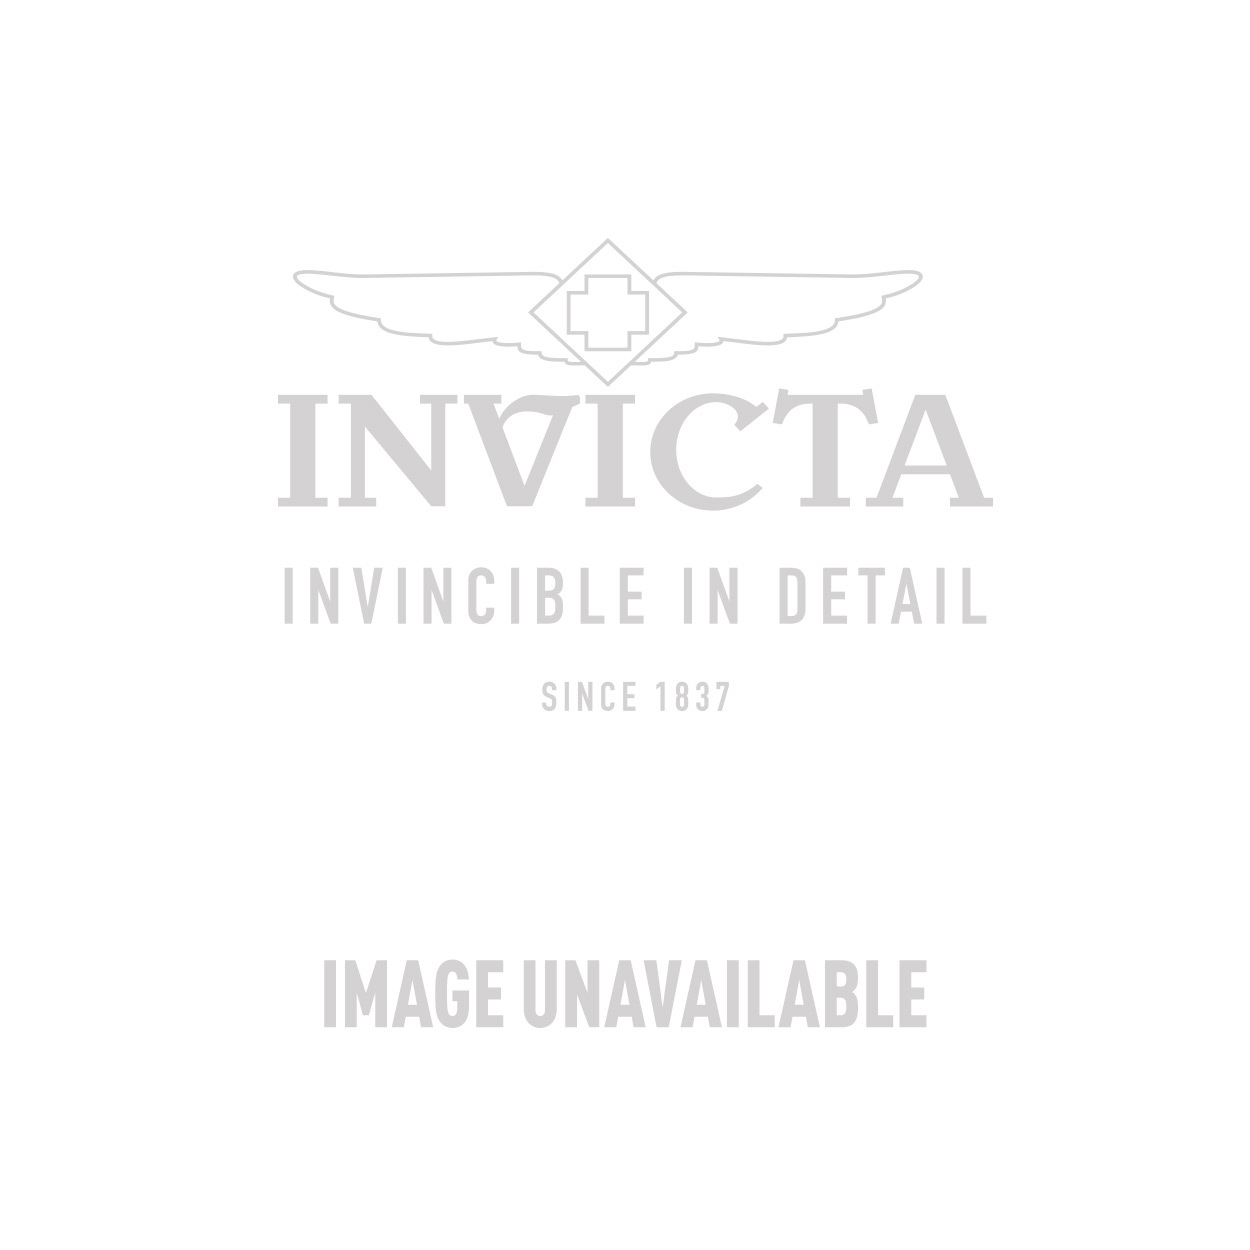 Invicta Sea Base Swiss Made Quartz Watch - Black, Stainless Steel case with Steel, Black tone Stainless Steel, Polyurethane band - Model 17950